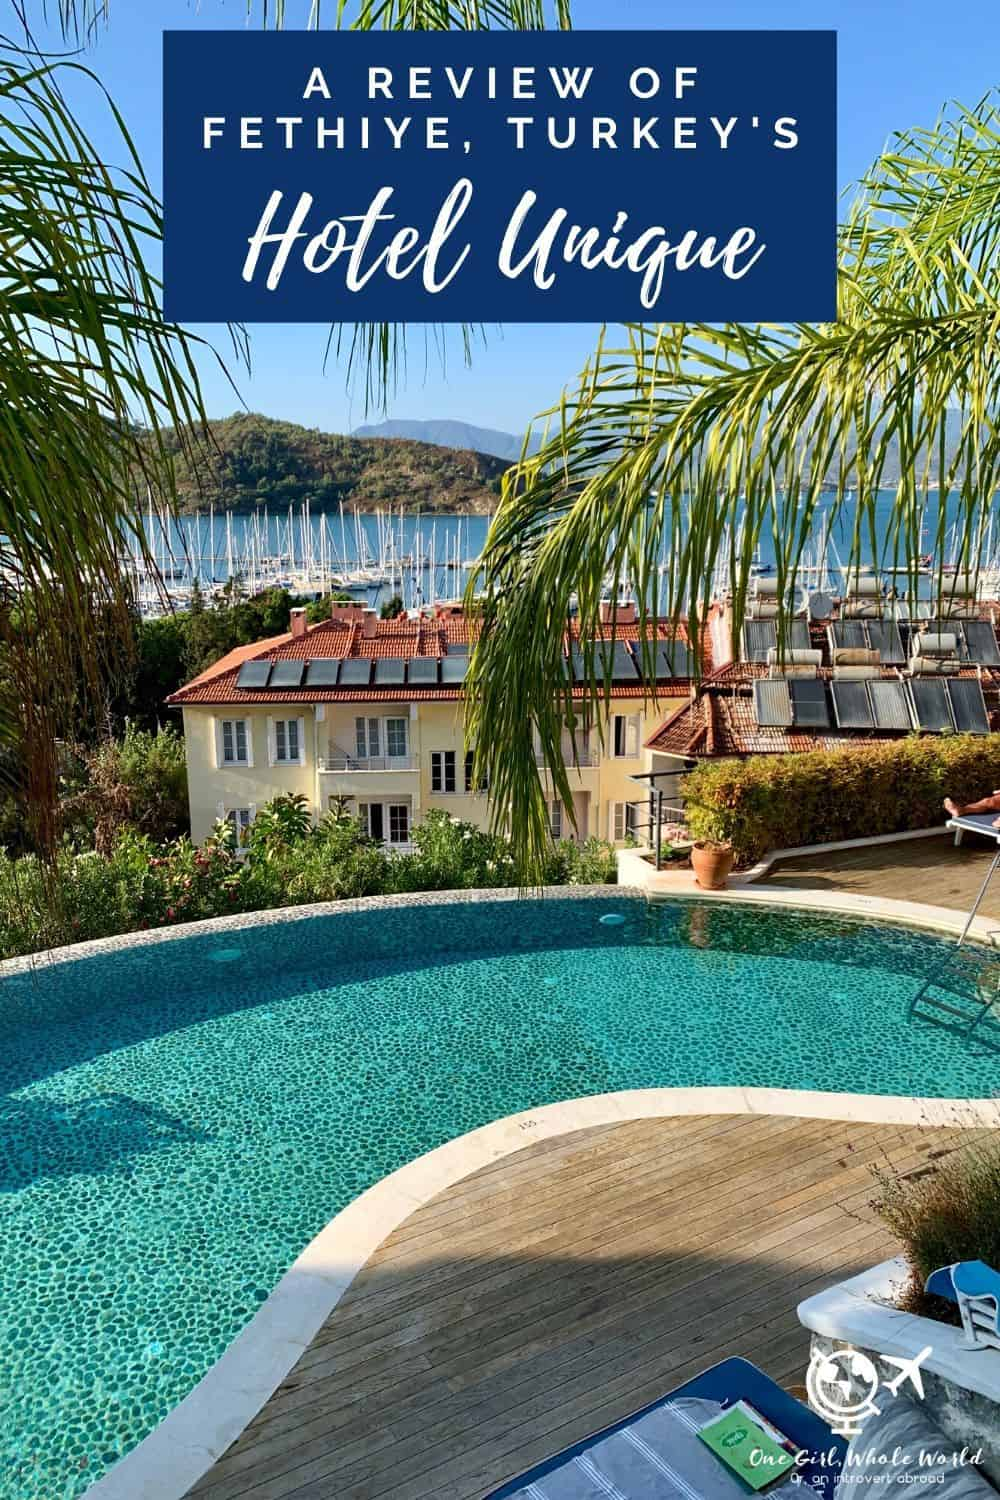 Staying at Hotel Unique in Fethiye, Turkey | A review of this beautiful hotel and all about my stay...I think this is one of the best hotels in Fethiye, with gorgeous rooms, balcony views, pool, wonderful staff, and more! A luxury yet affordable hotel. #fethiye #turkey #turquoisecoast #hotelreview #luxury